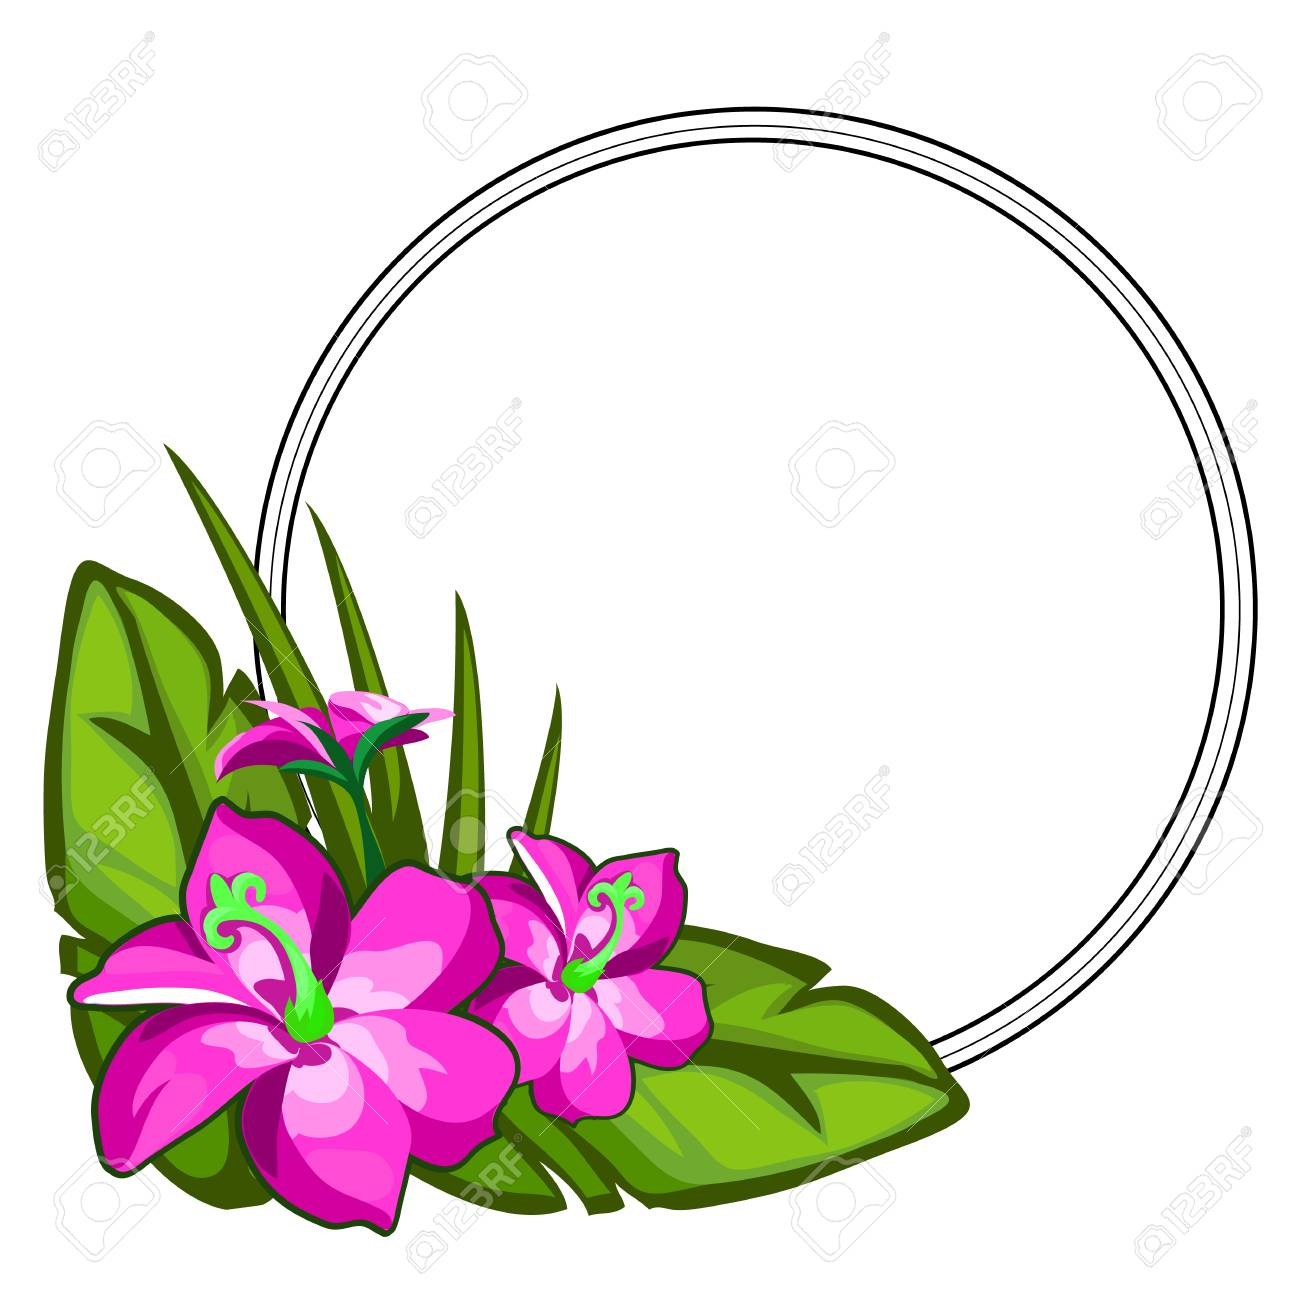 Bright pink flower on large green leaves flower arrangement bright pink flower on large green leaves flower arrangement with circular frame for text mightylinksfo